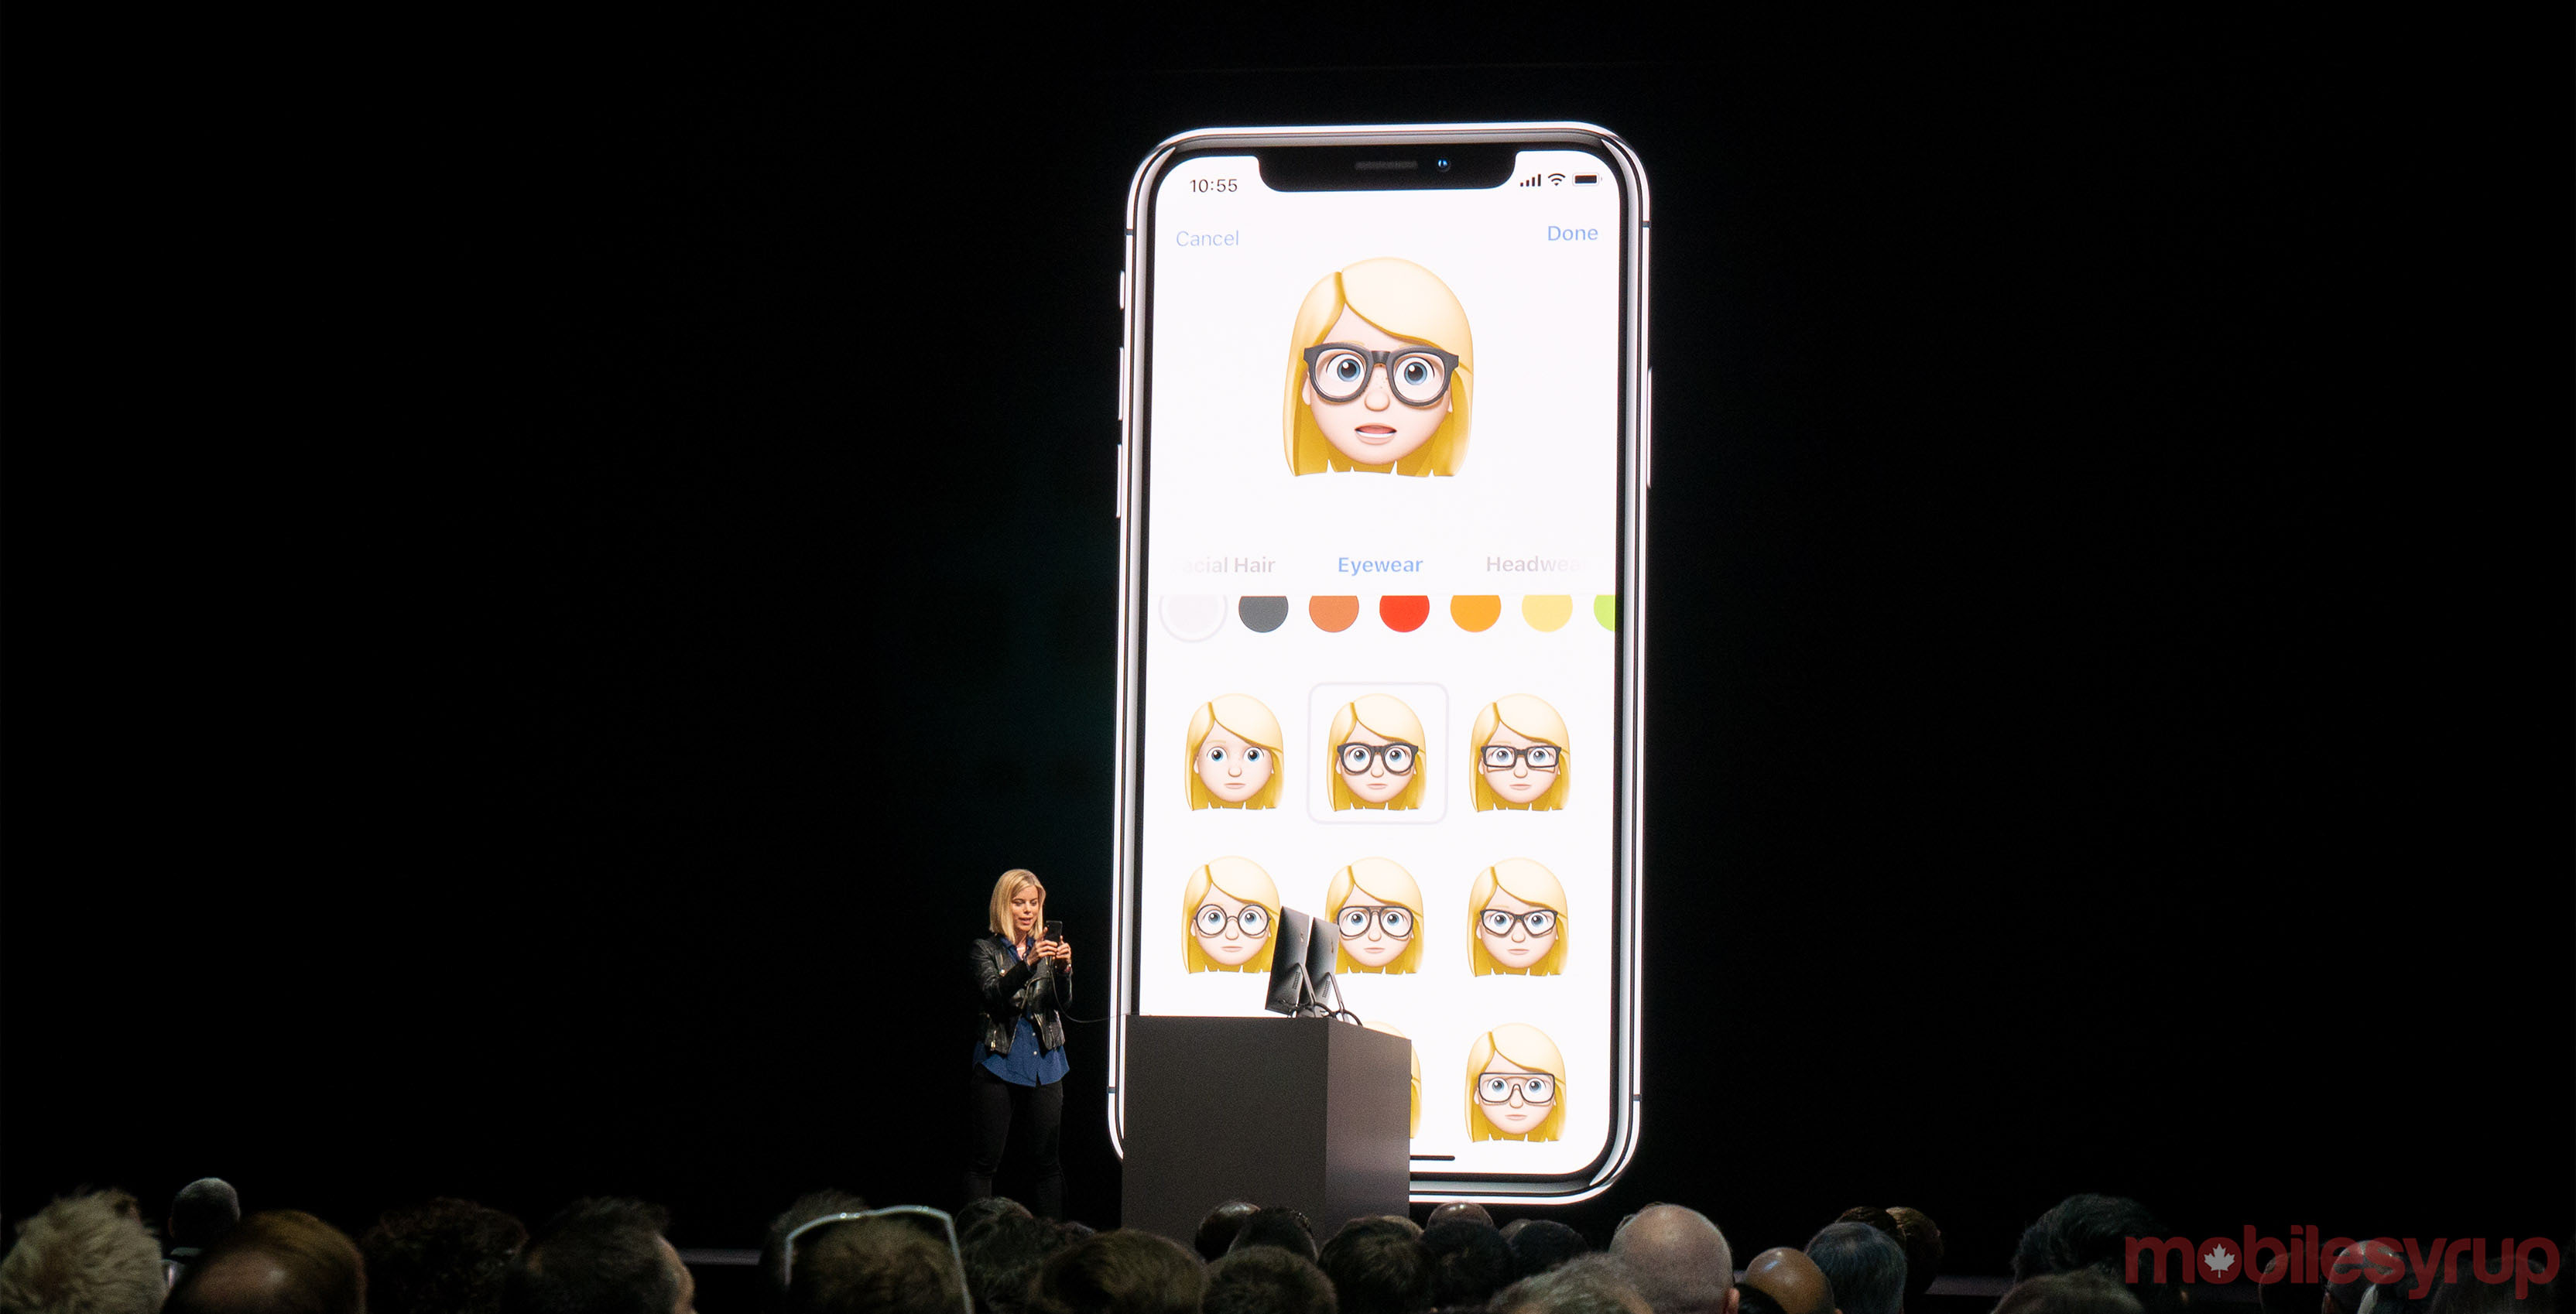 New iOS 12 Hidden Features and Changes on iPhone, iPad